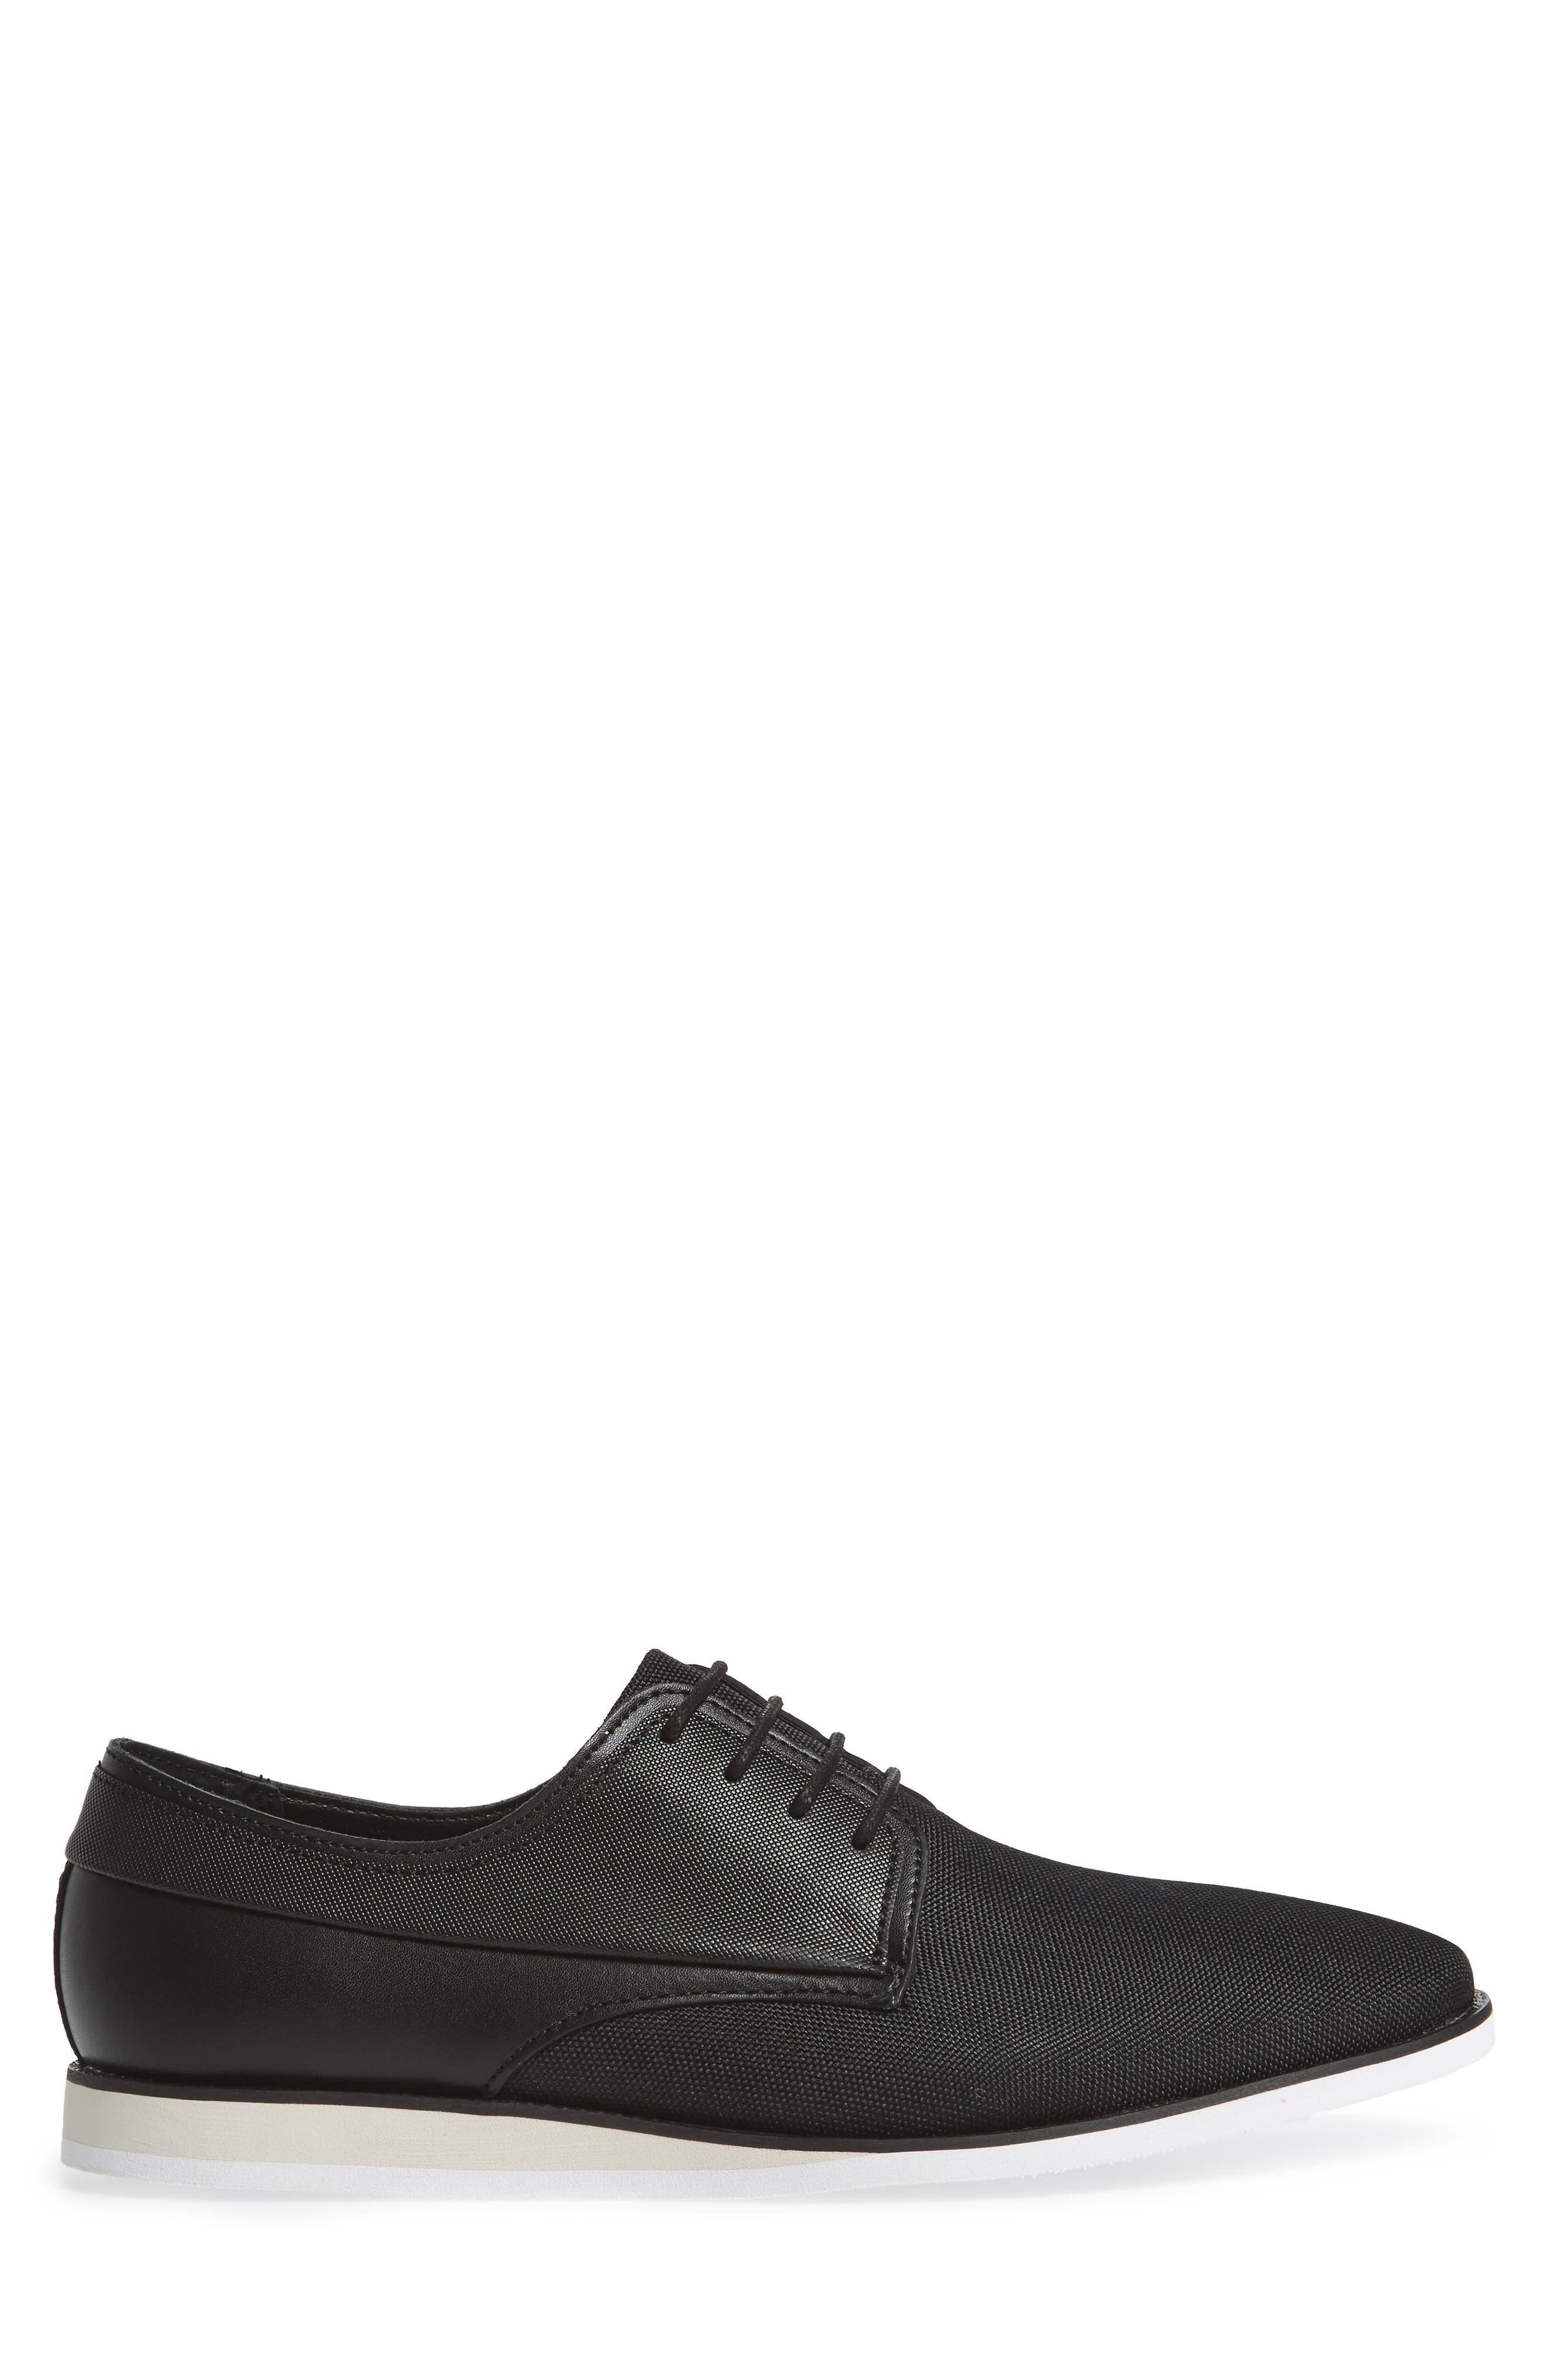 Kellen City Embossed Casual Derby,                             Alternate thumbnail 3, color,                             001